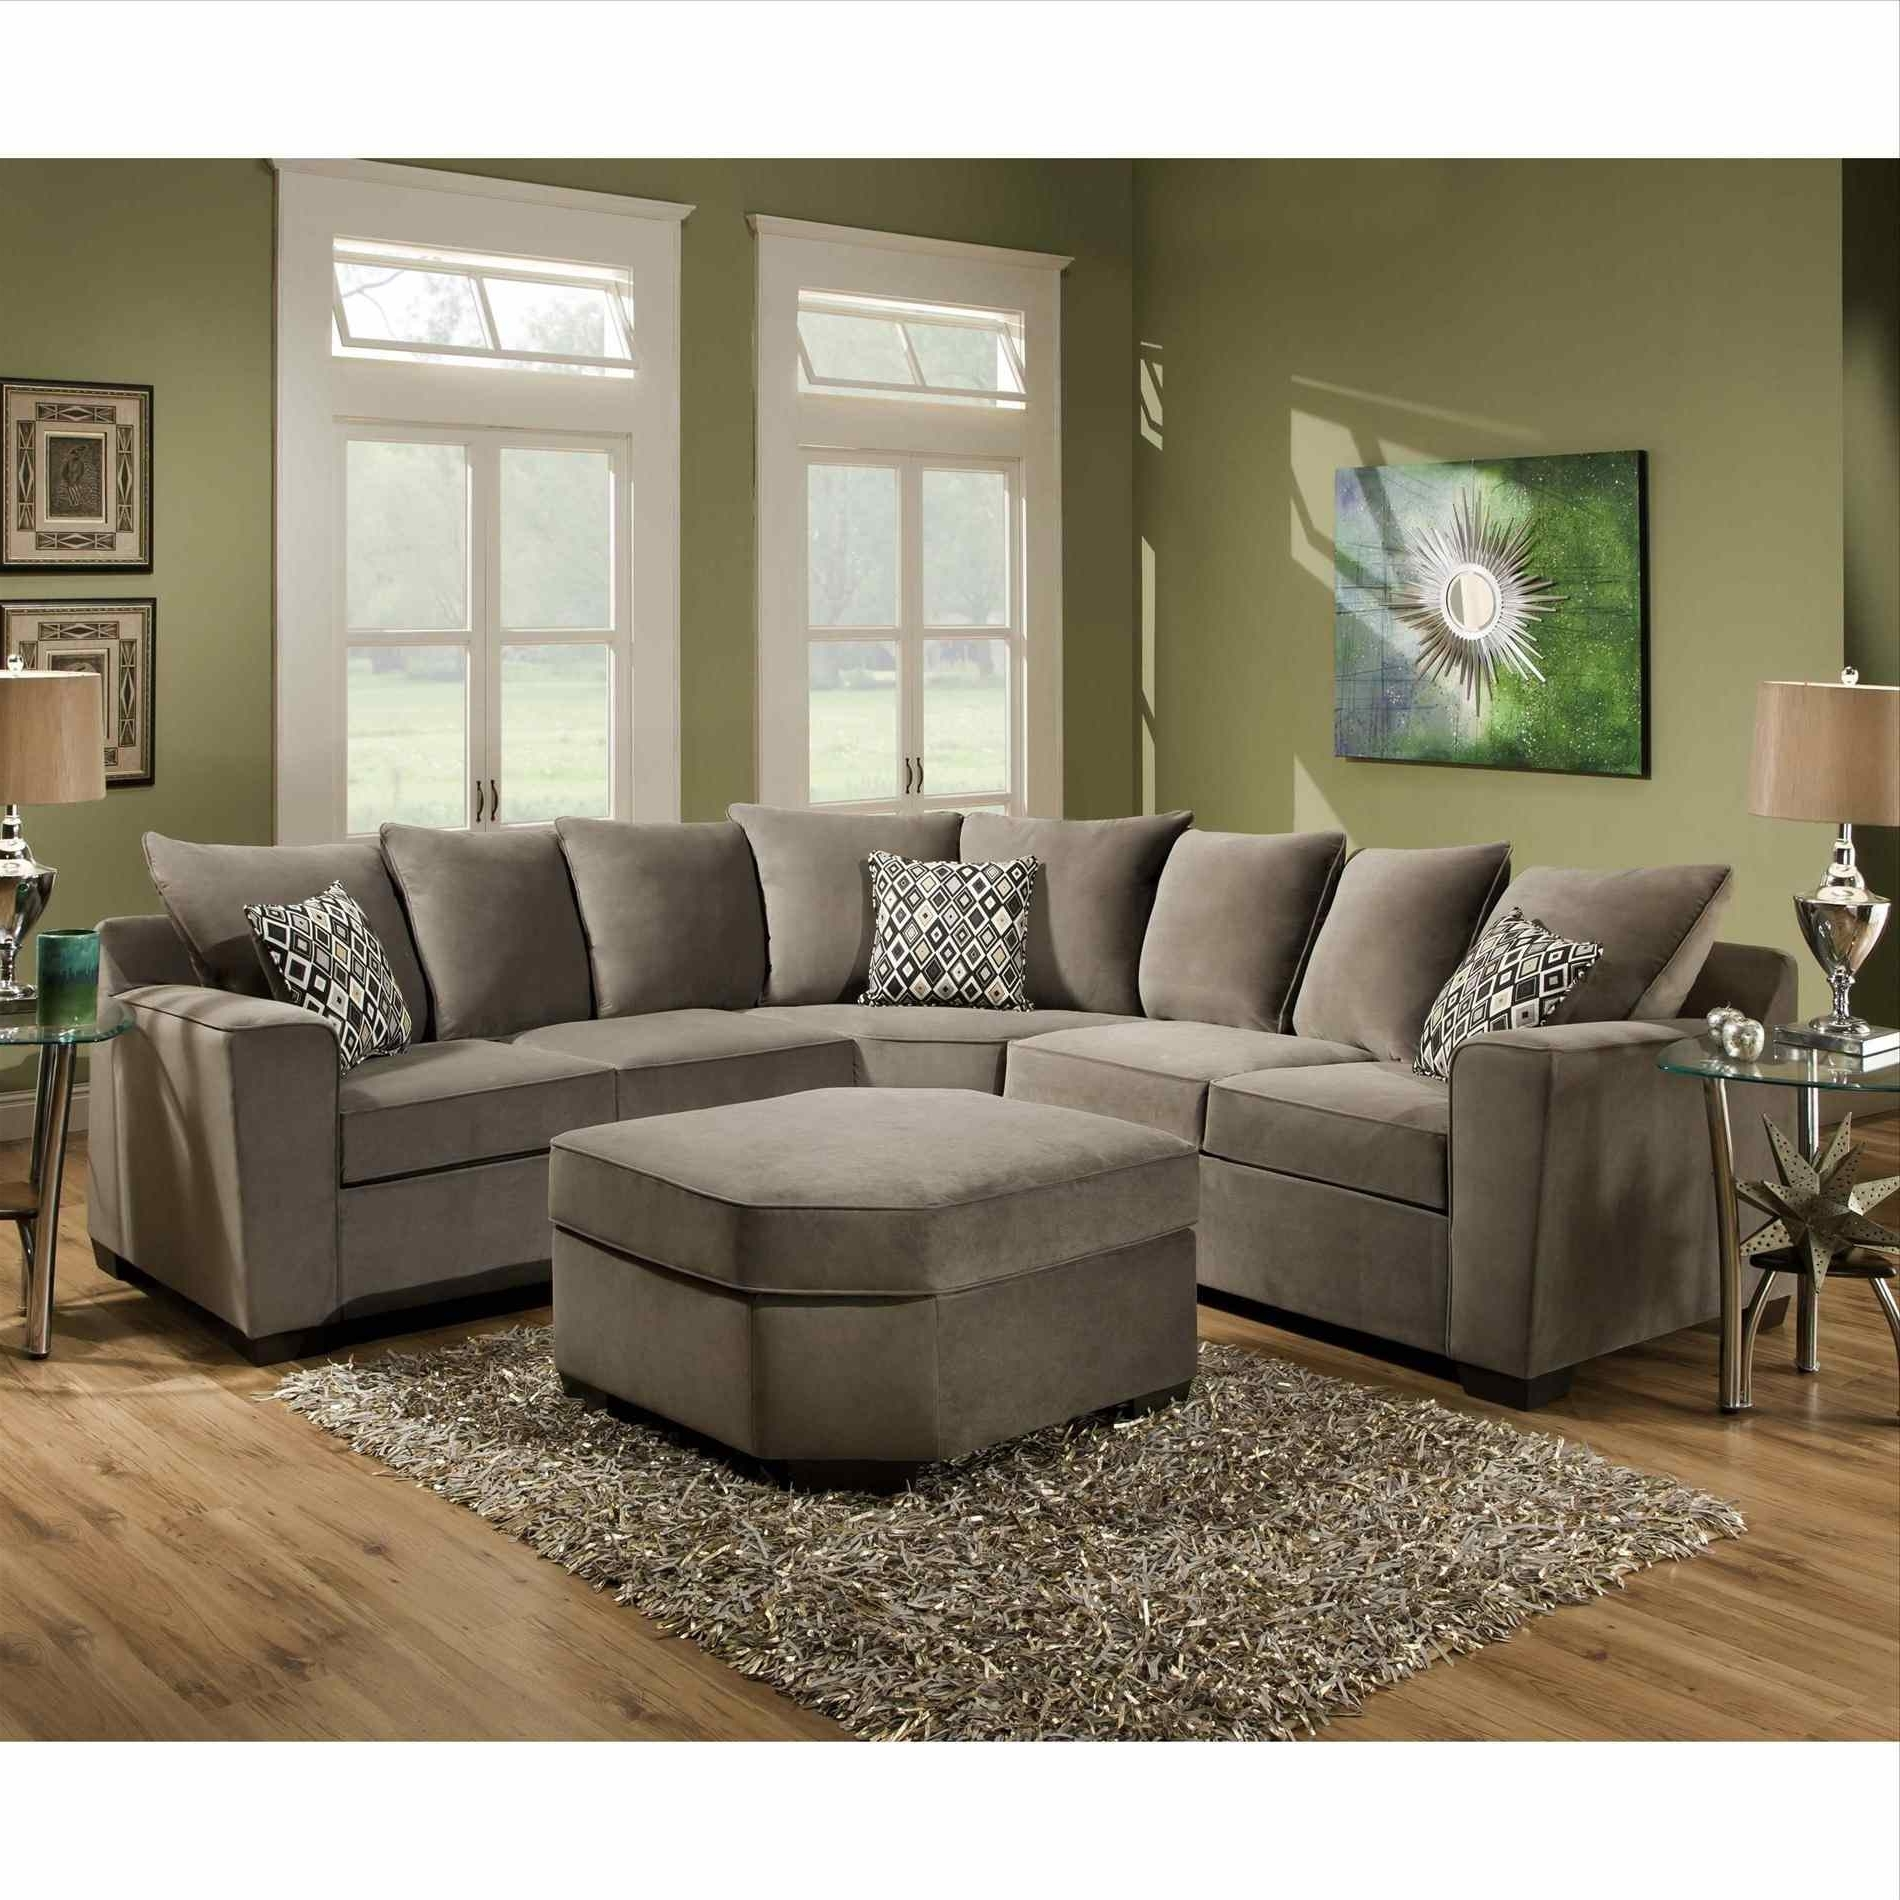 Most Recent Sectional Sofas At Bad Boy Inside Couch : Furniture Bad Boy Sectional Es Wrap Around Couch Furniture (View 9 of 15)